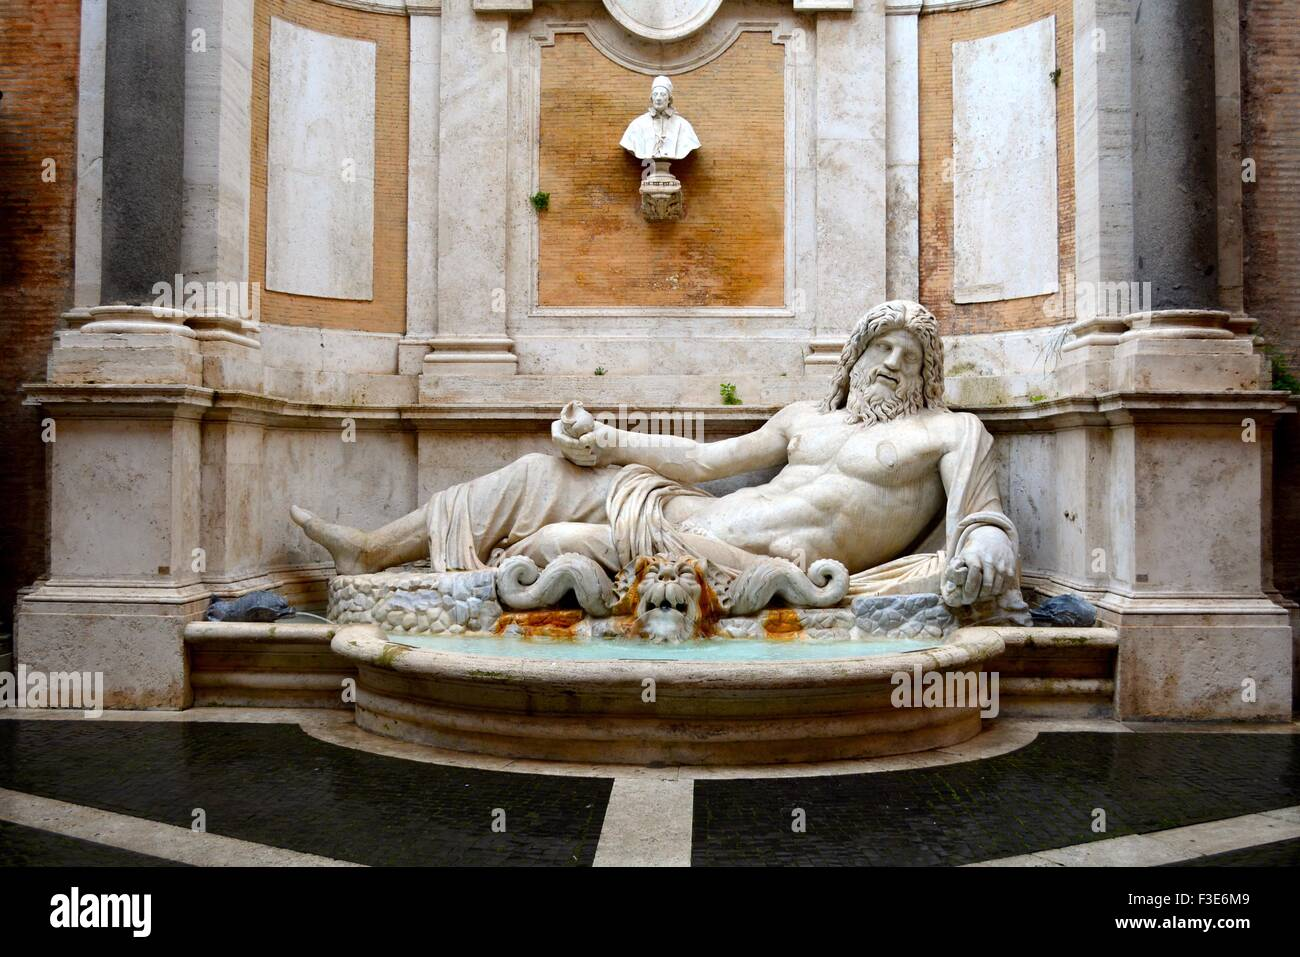 Ancient statue of Neptune in the Capitoline museum, Rome, Italy - Stock Image